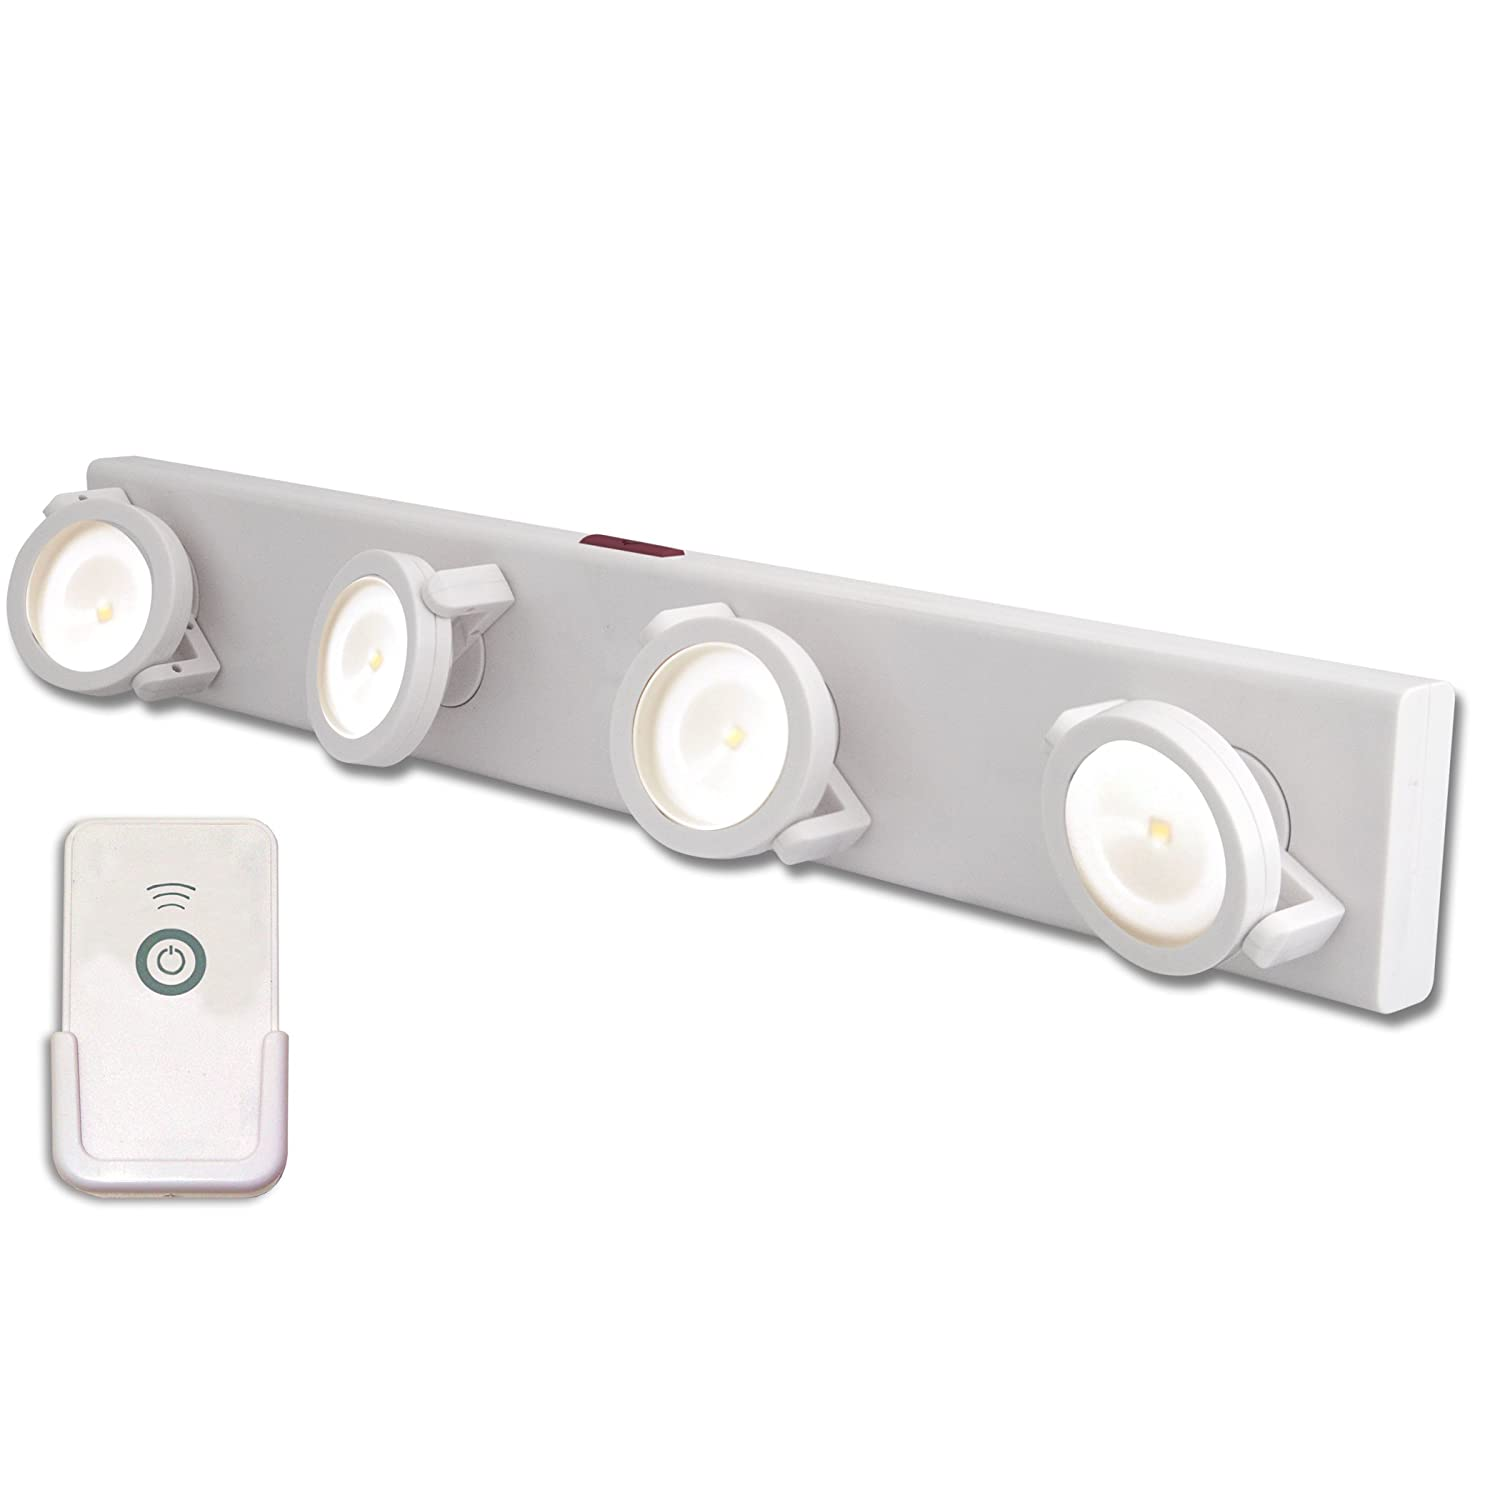 amazon track lighting. Rite Lite LPL704WRC LED Track Light With Remote - Lighting Kits Amazon.com Amazon T